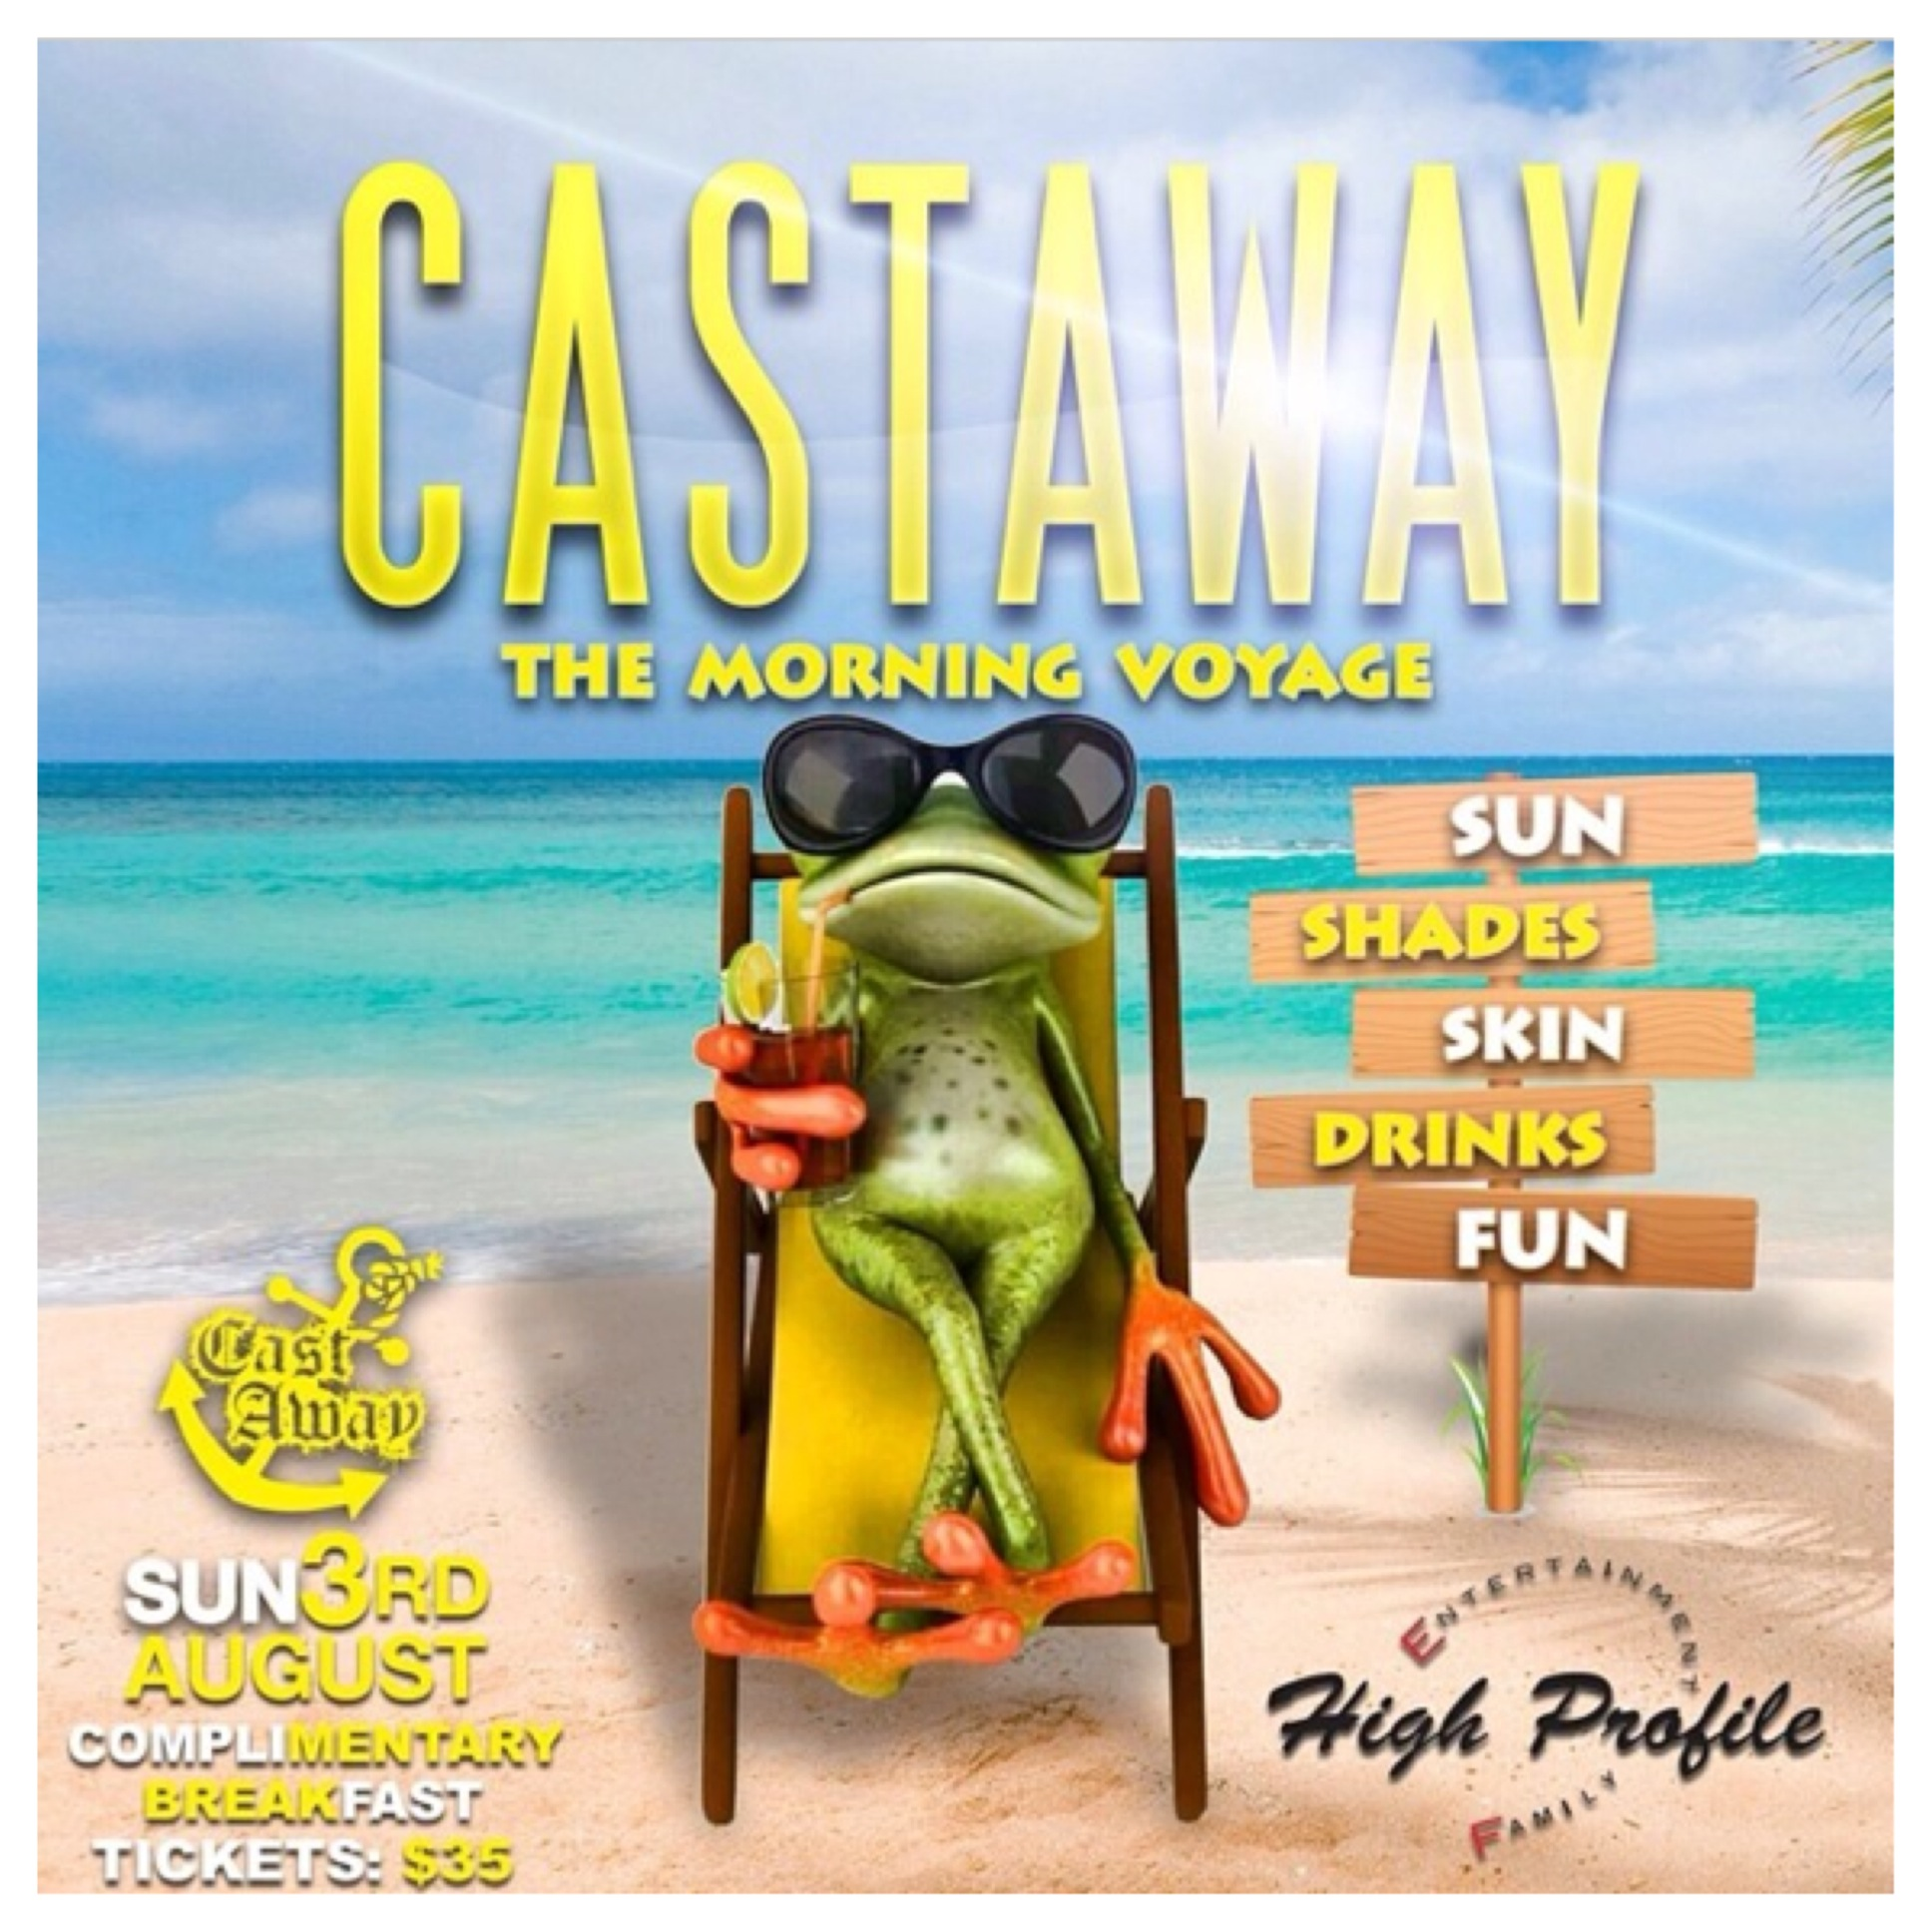 Cast Away: The Morning Voyage